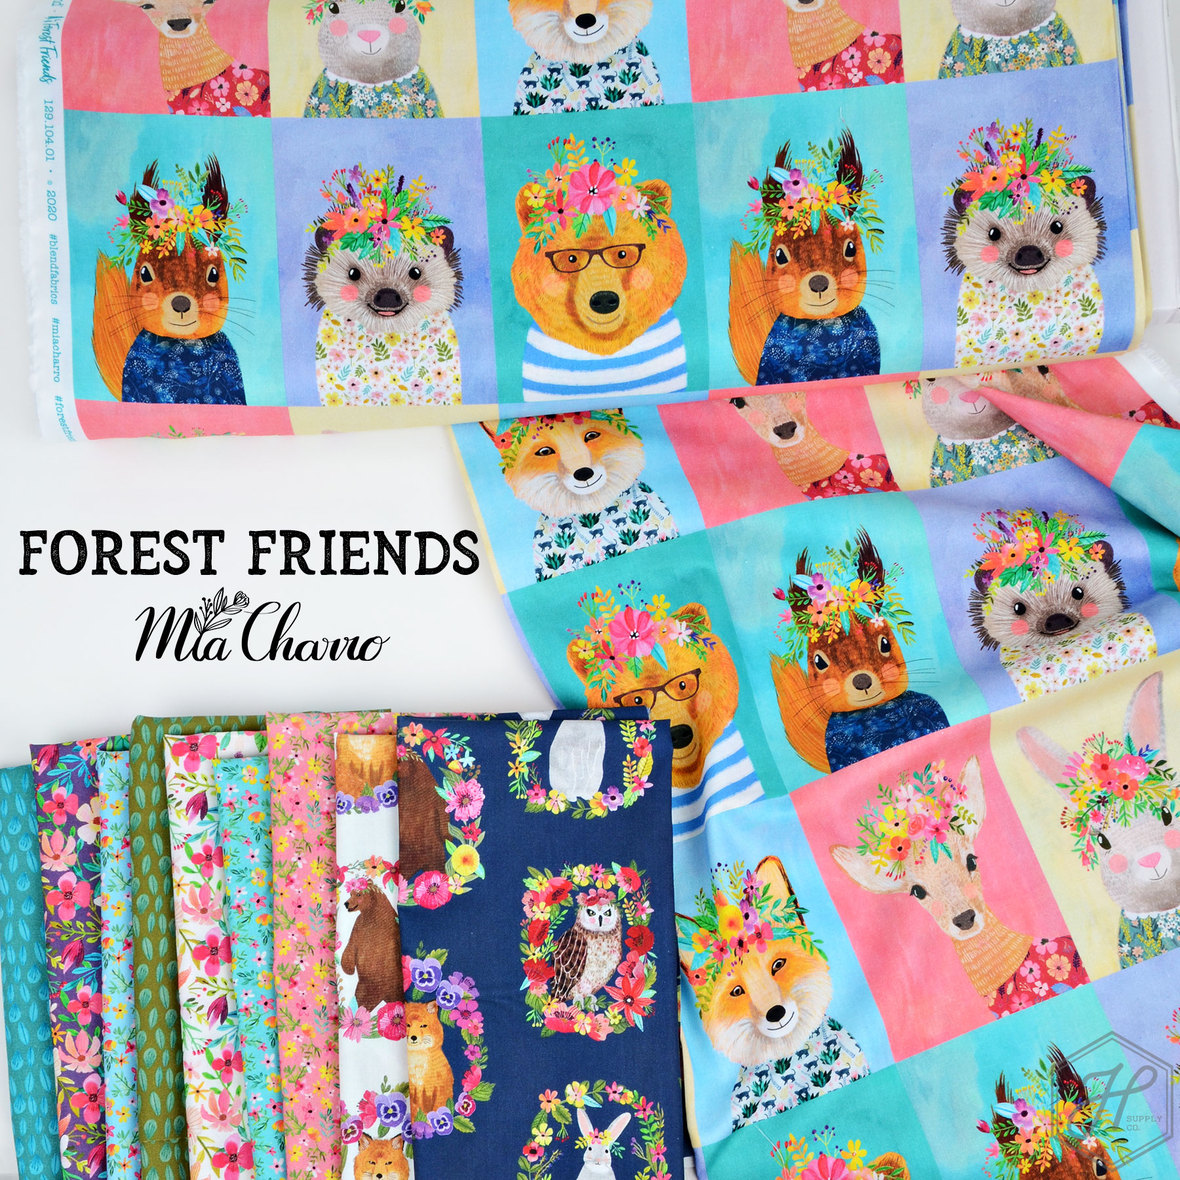 Forest-Friends-Mia-Charro-for-Blend-at-Hawthorne-Supply-Co